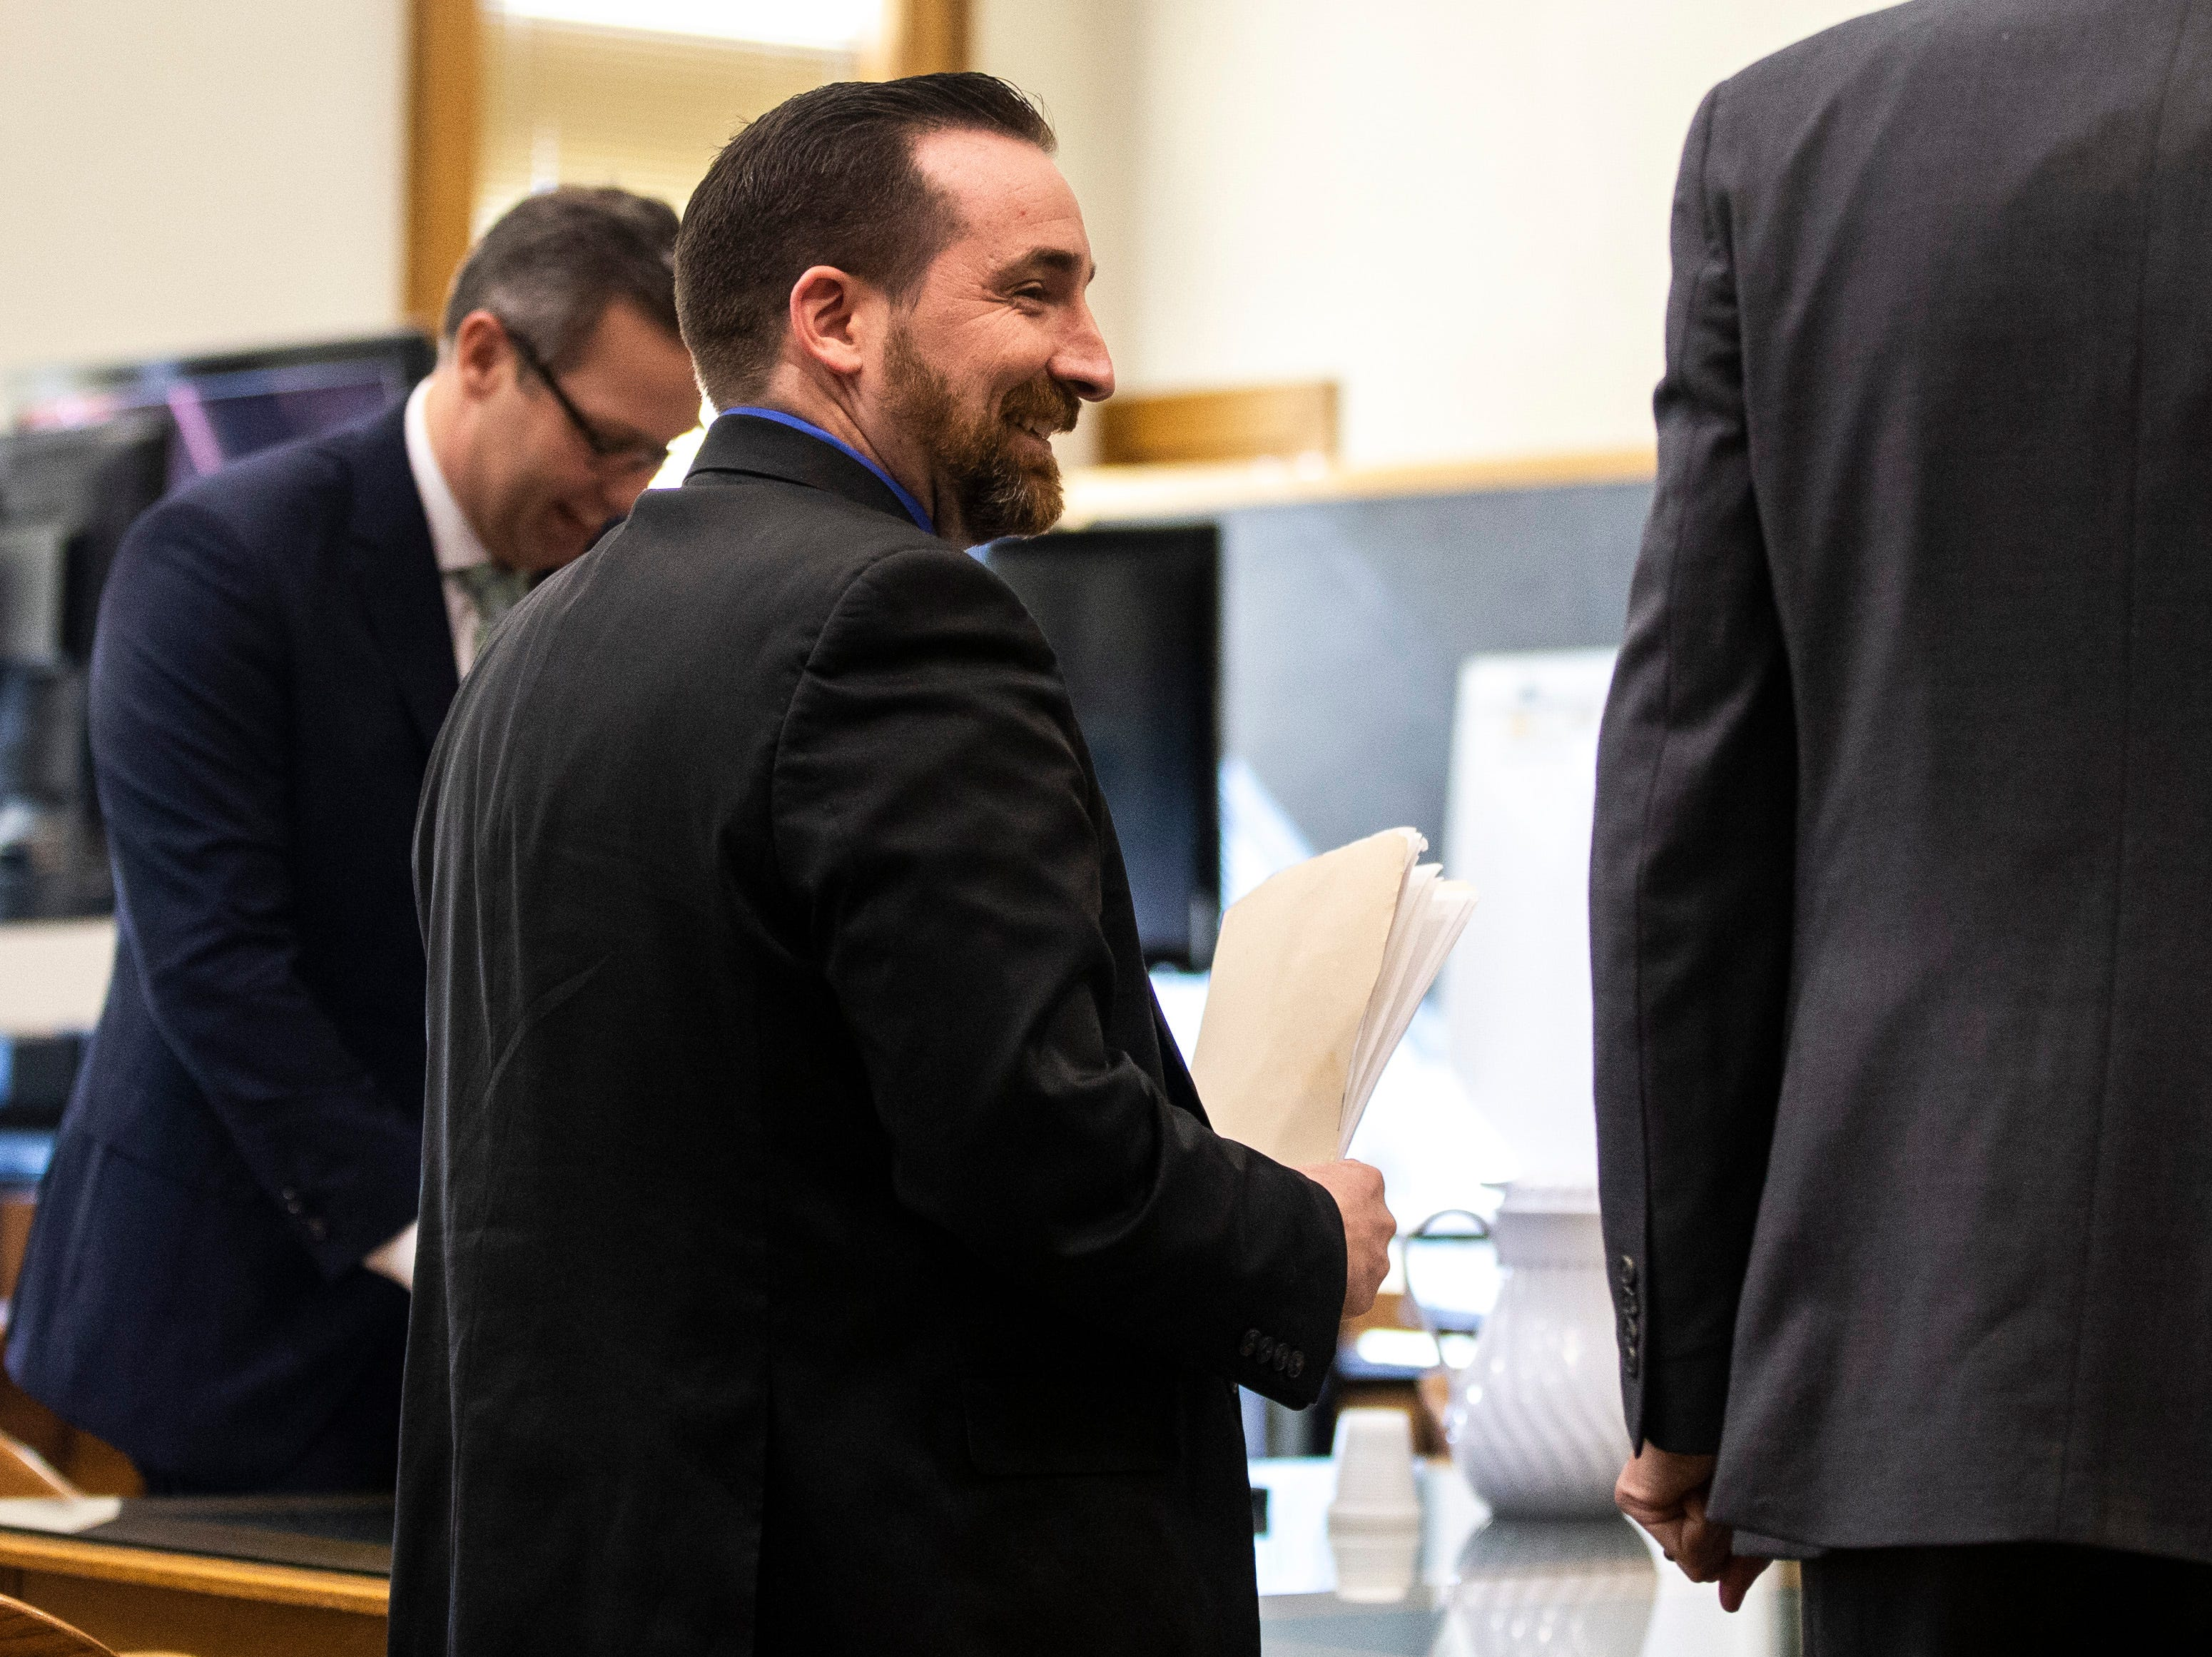 Judge Jason Besler, left, collects papers after a pre-litigation hearing, Monday, Feb. 18, 2019 at Johnson County Courthouse in Iowa City, Iowa.